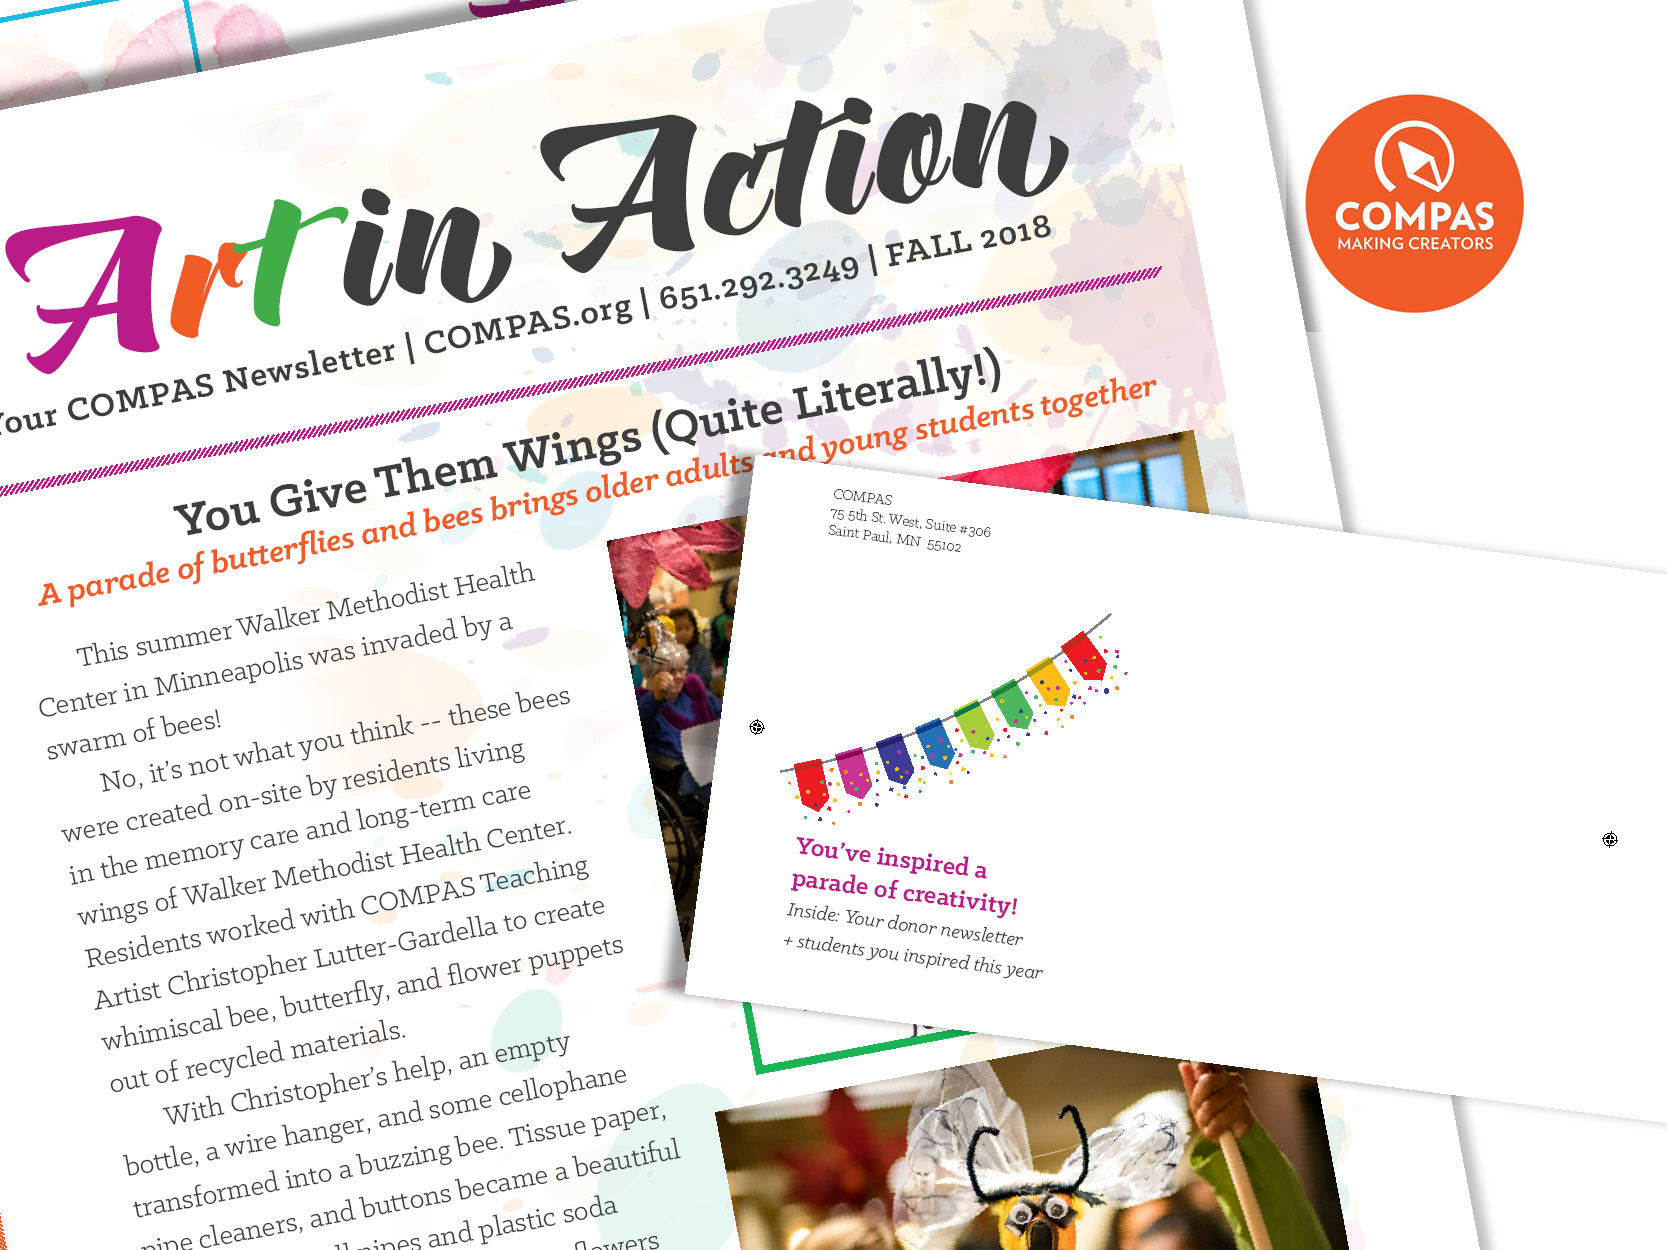 COMPASDonor Newsletters - Strategy, copy, and designDid you know that a well-executed donor newsletter can raise as much (even more) than an appeal letter?I create the strategy, copy, and design for donor newsletters that inform and delight your donors — and encourage them to give.